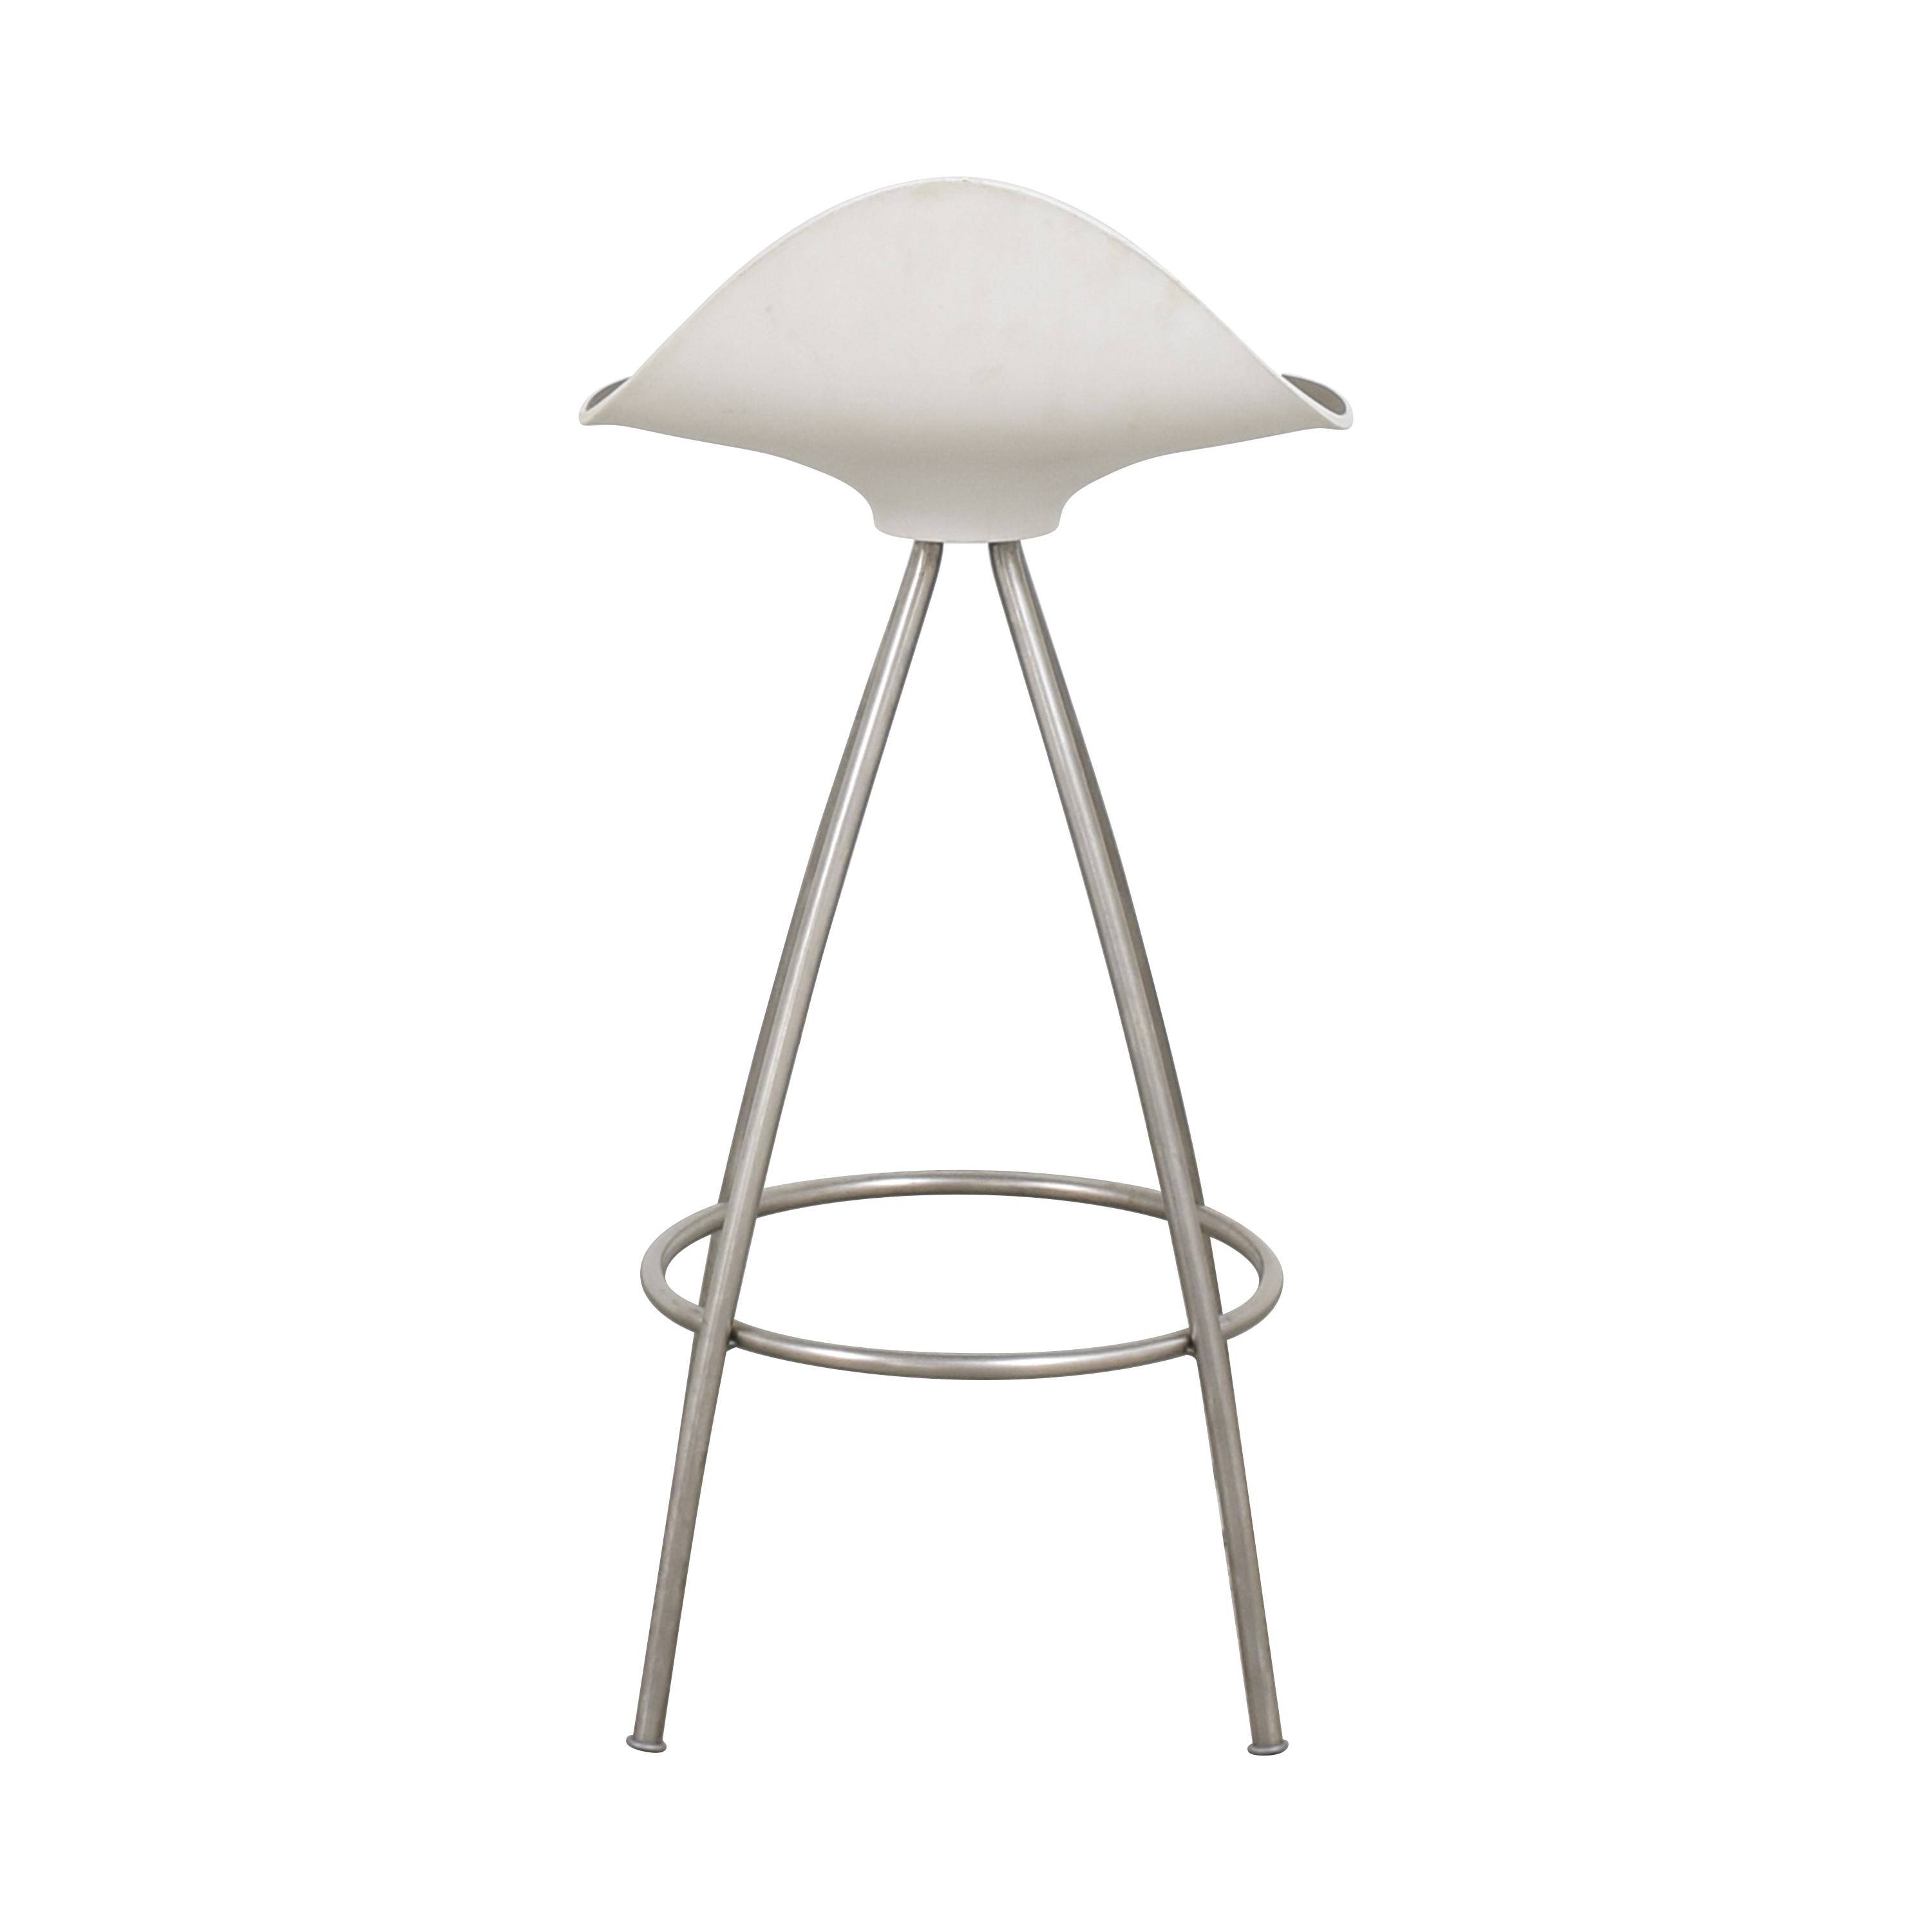 shop Design Within Reach Onda Counter Stool Design Within Reach